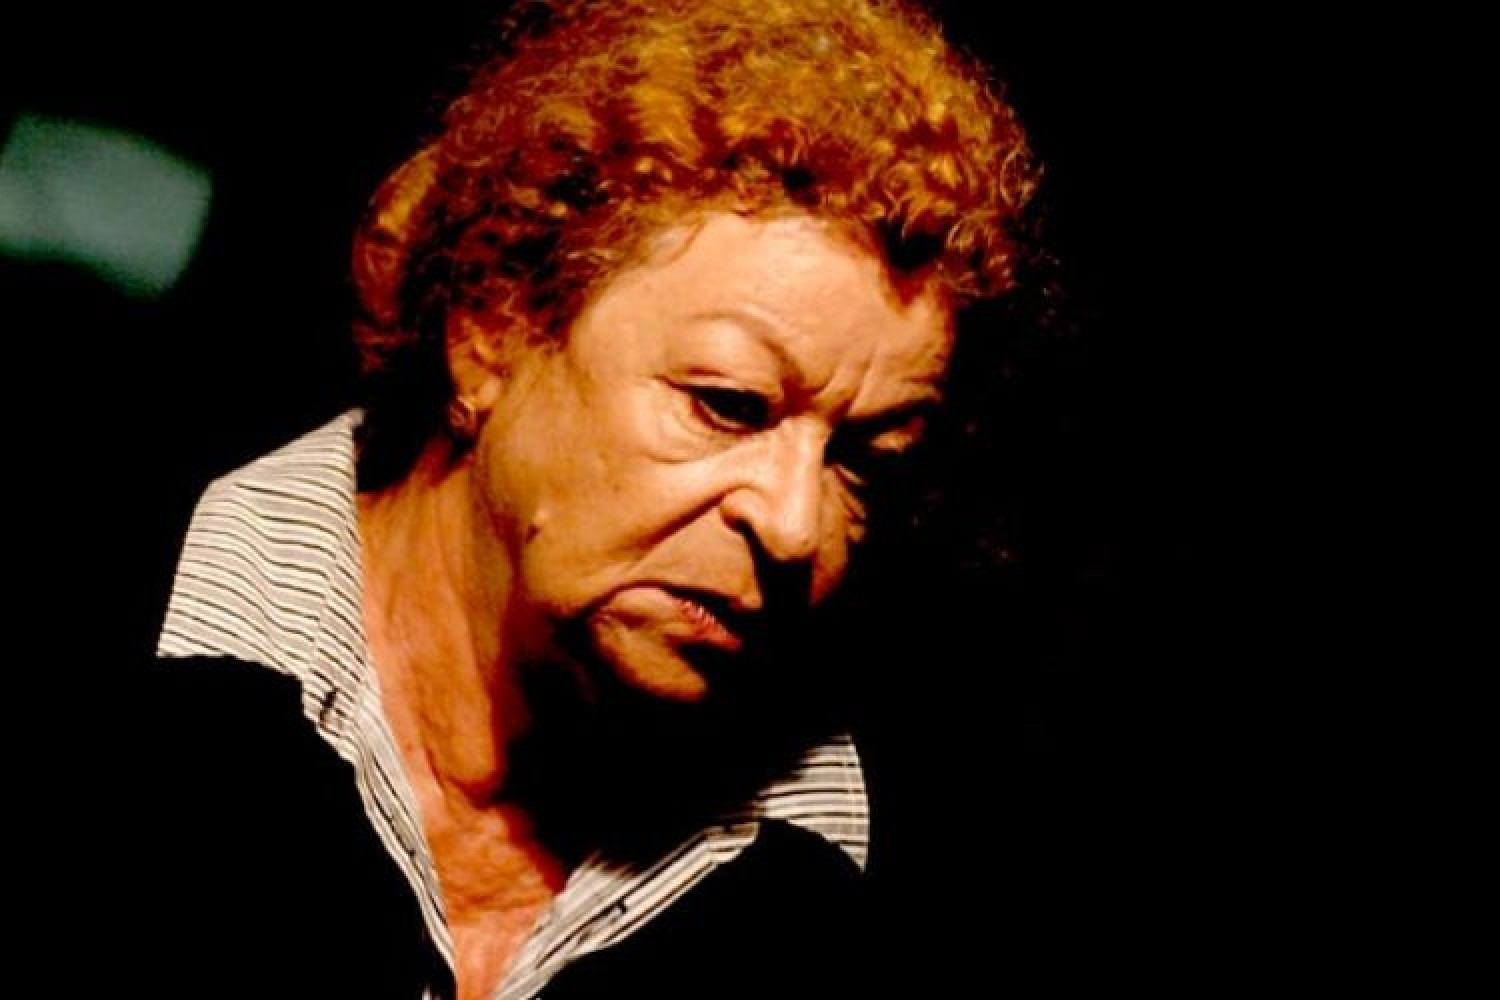 Addio a Barbara Valmorin, indimenticabile attrice di teatro e cinema